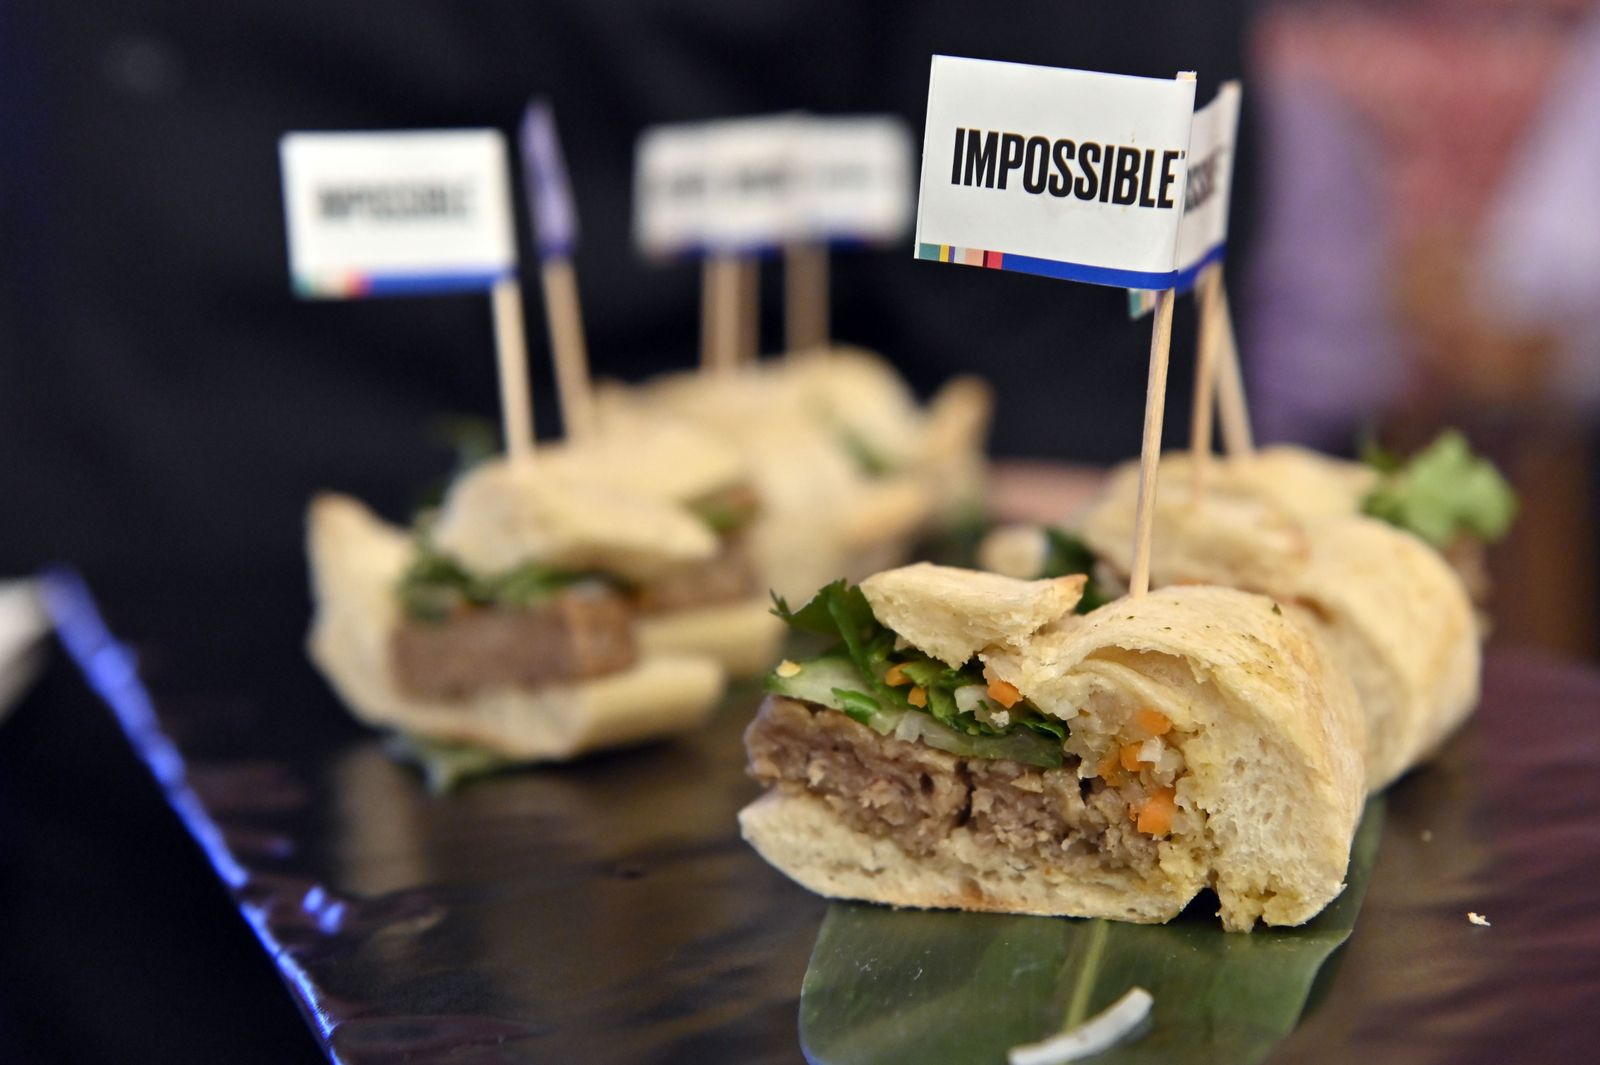 Impossible Pork Banh Mi / Impossible Foods